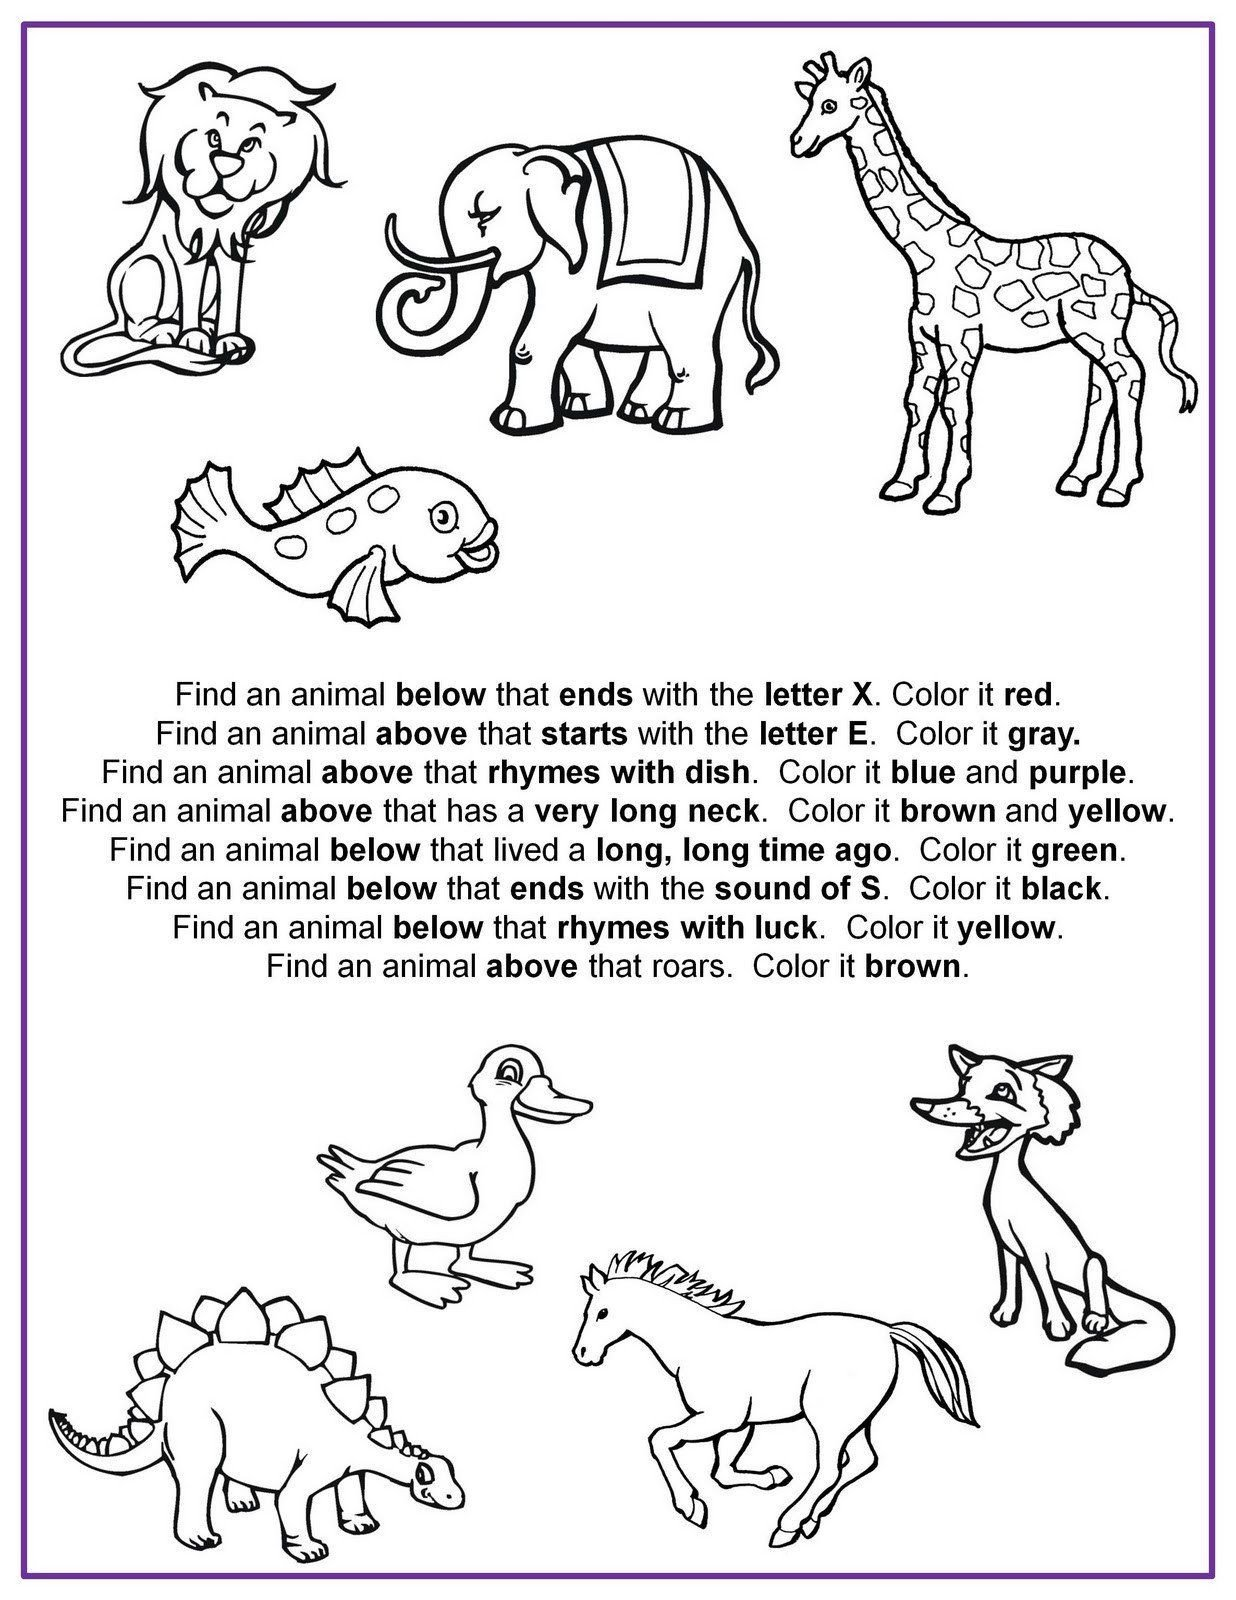 Following Directions Coloring Worksheet 20 Following Directions Coloring Worksheet In 2020